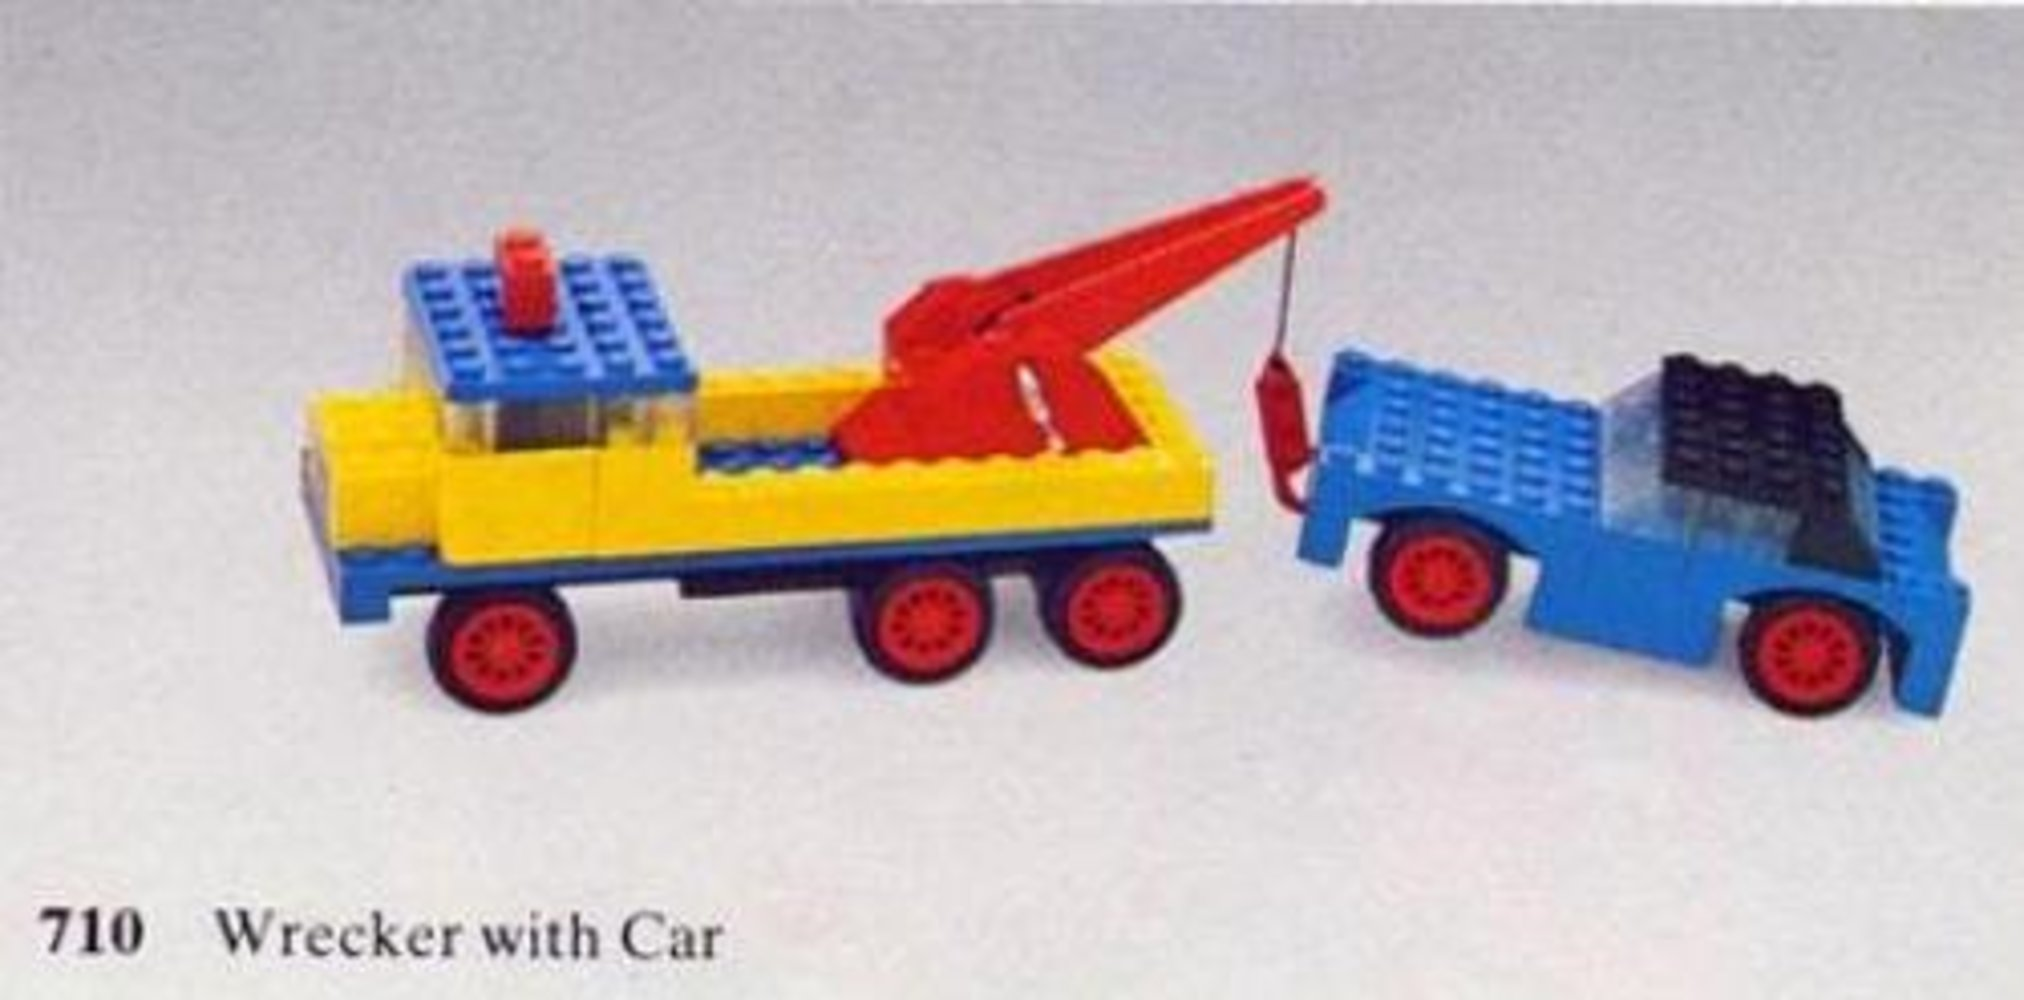 Wrecker with Car